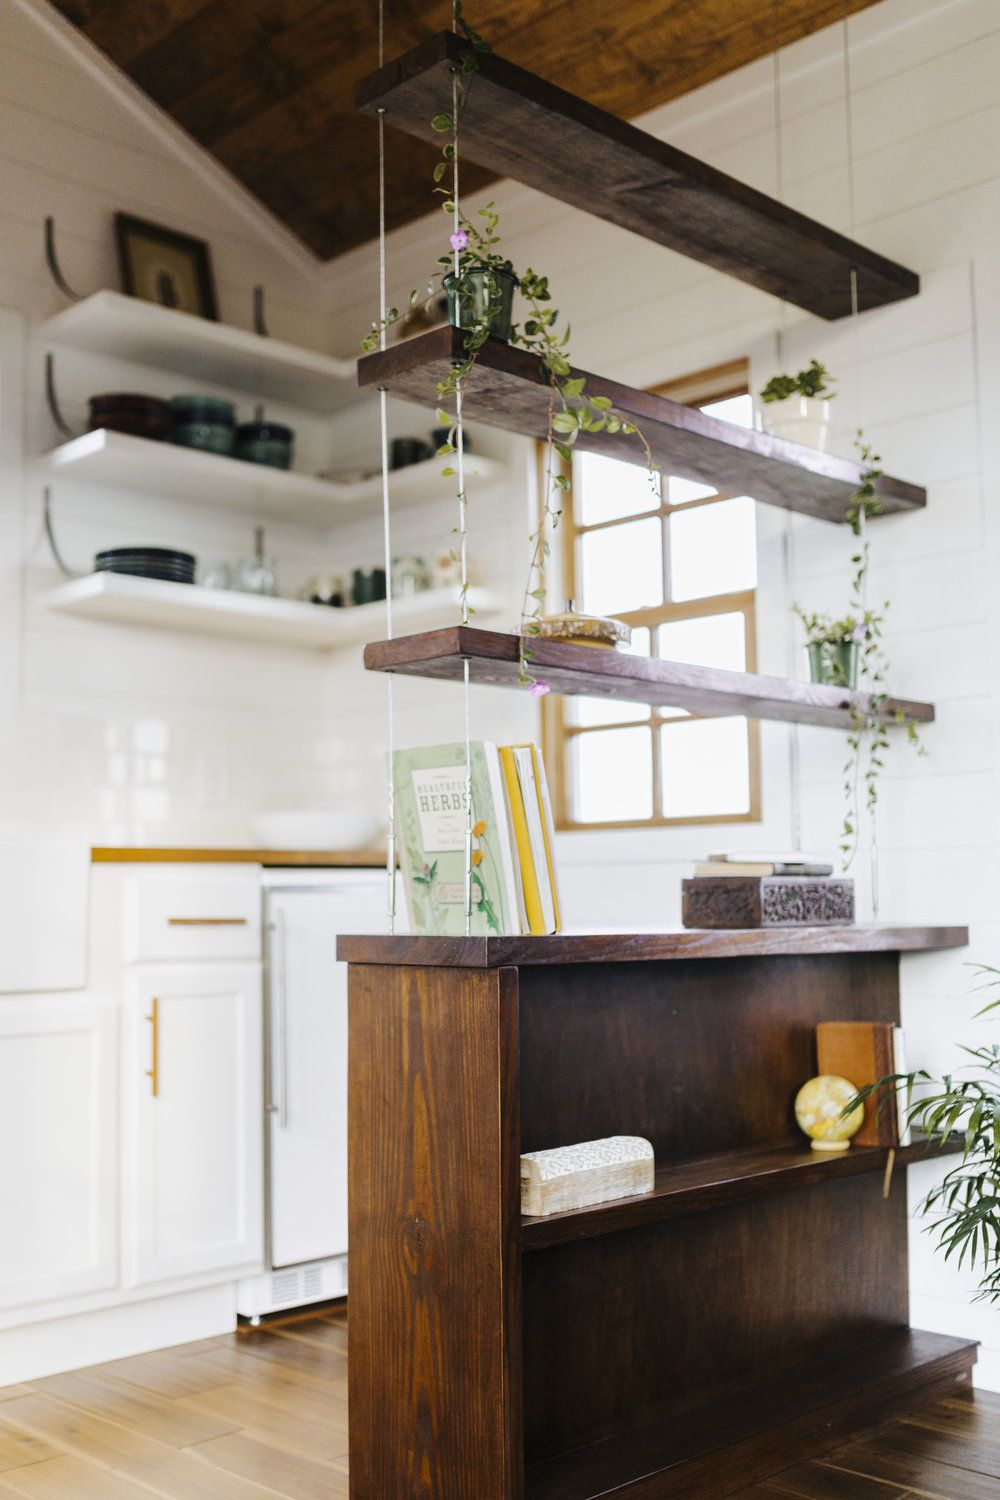 The Monocle By Wind River Tiny Homes Suspended Cable Shelving Shiplap Siding Open Shelving Hanging Shelf Kitchen Tiny House Kitchen Tiny House Storage